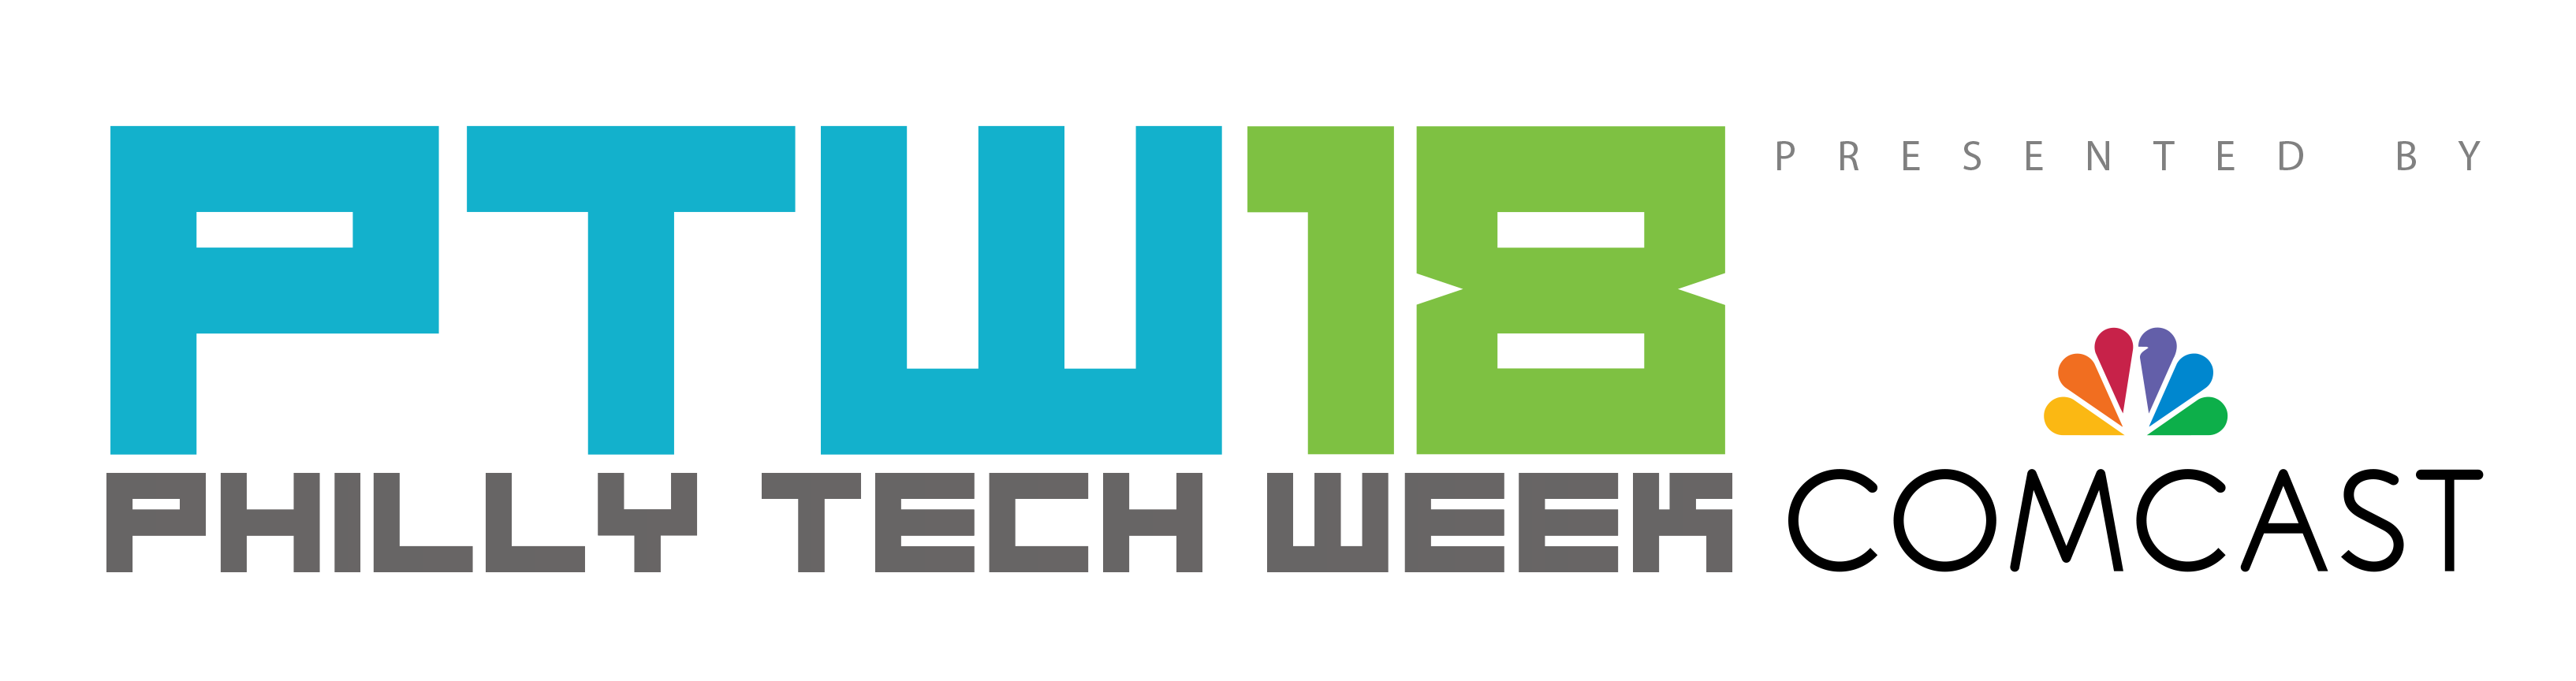 Philly Tech Week 2018